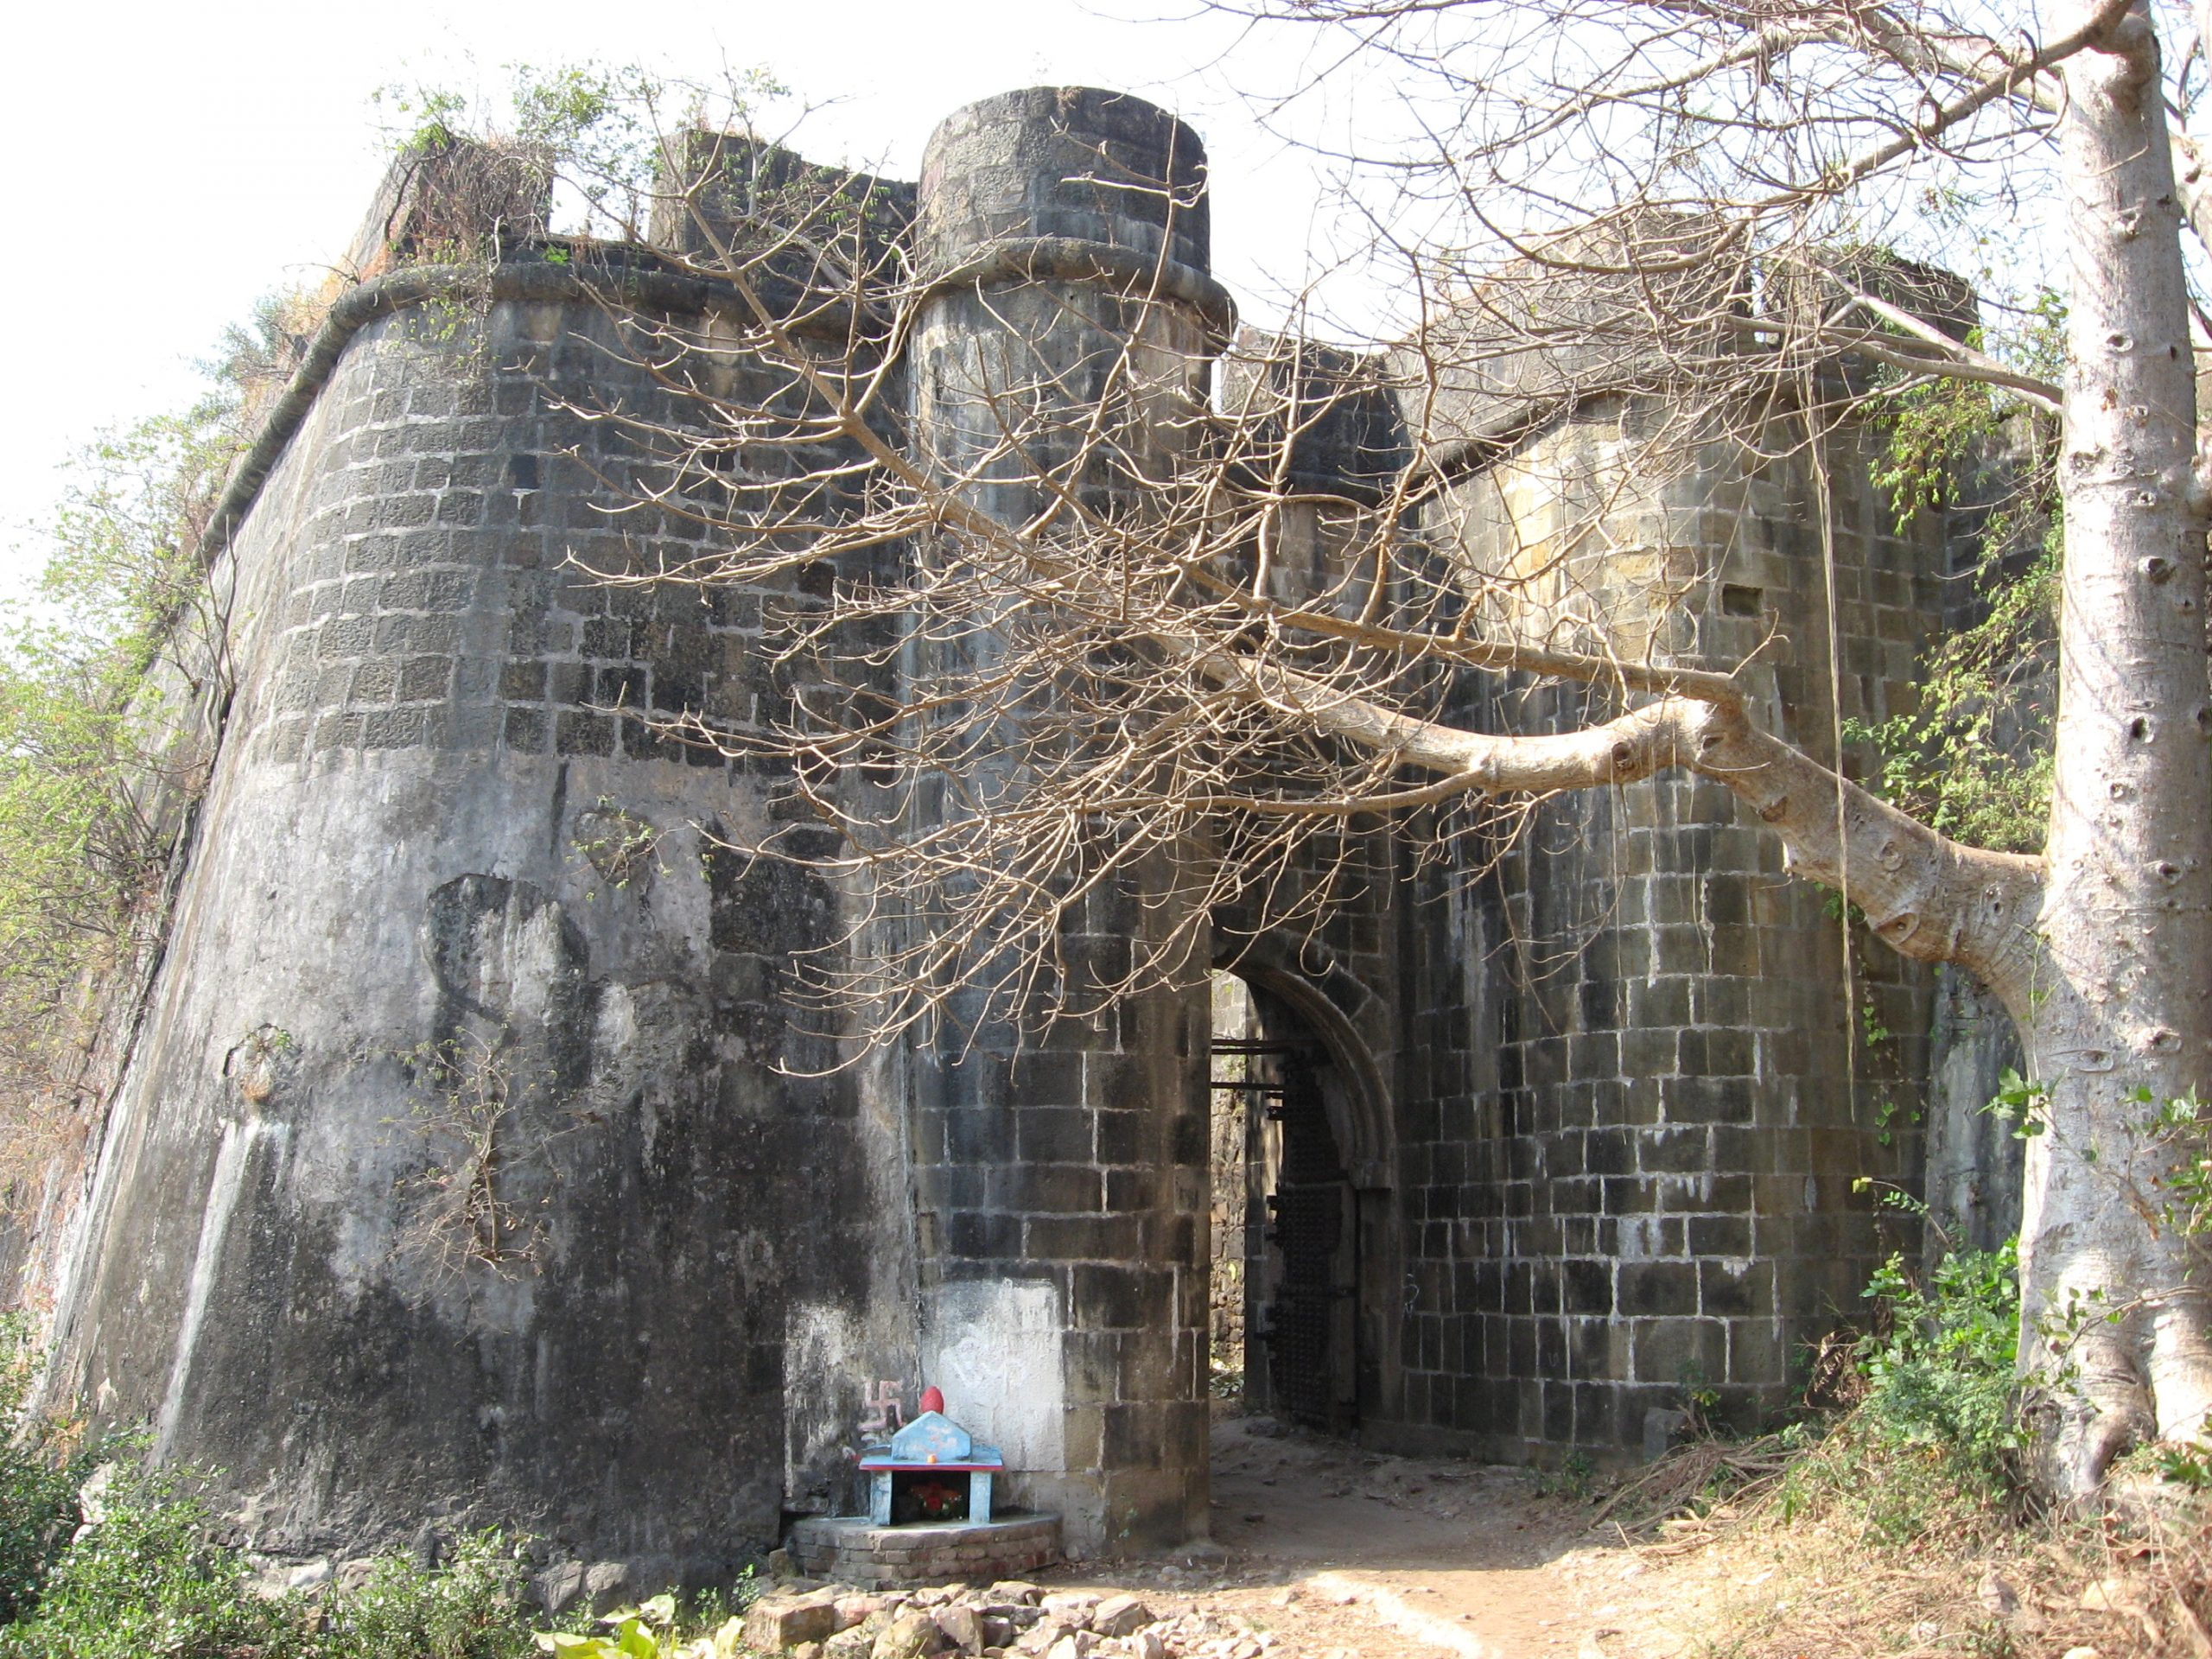 Bassein Fort - The Urban Fort of Maharashtra